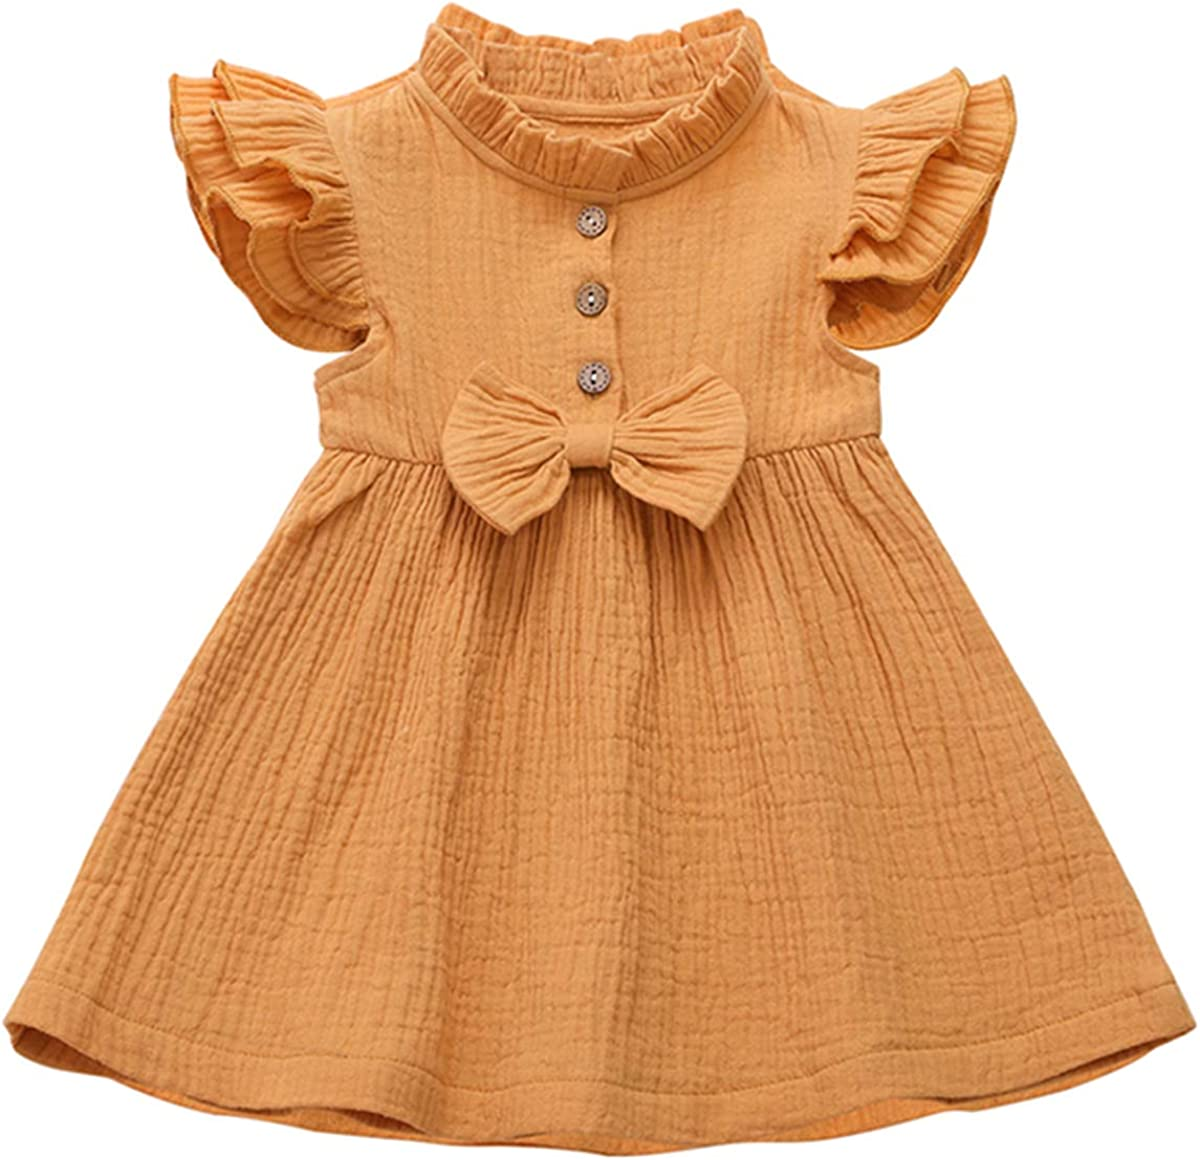 RJXDLT Toddler Girls Lace Dress Baby Girl Elegant Dress Girl Flutter Sleeve Lace Dress Flower Girls Lace Dress